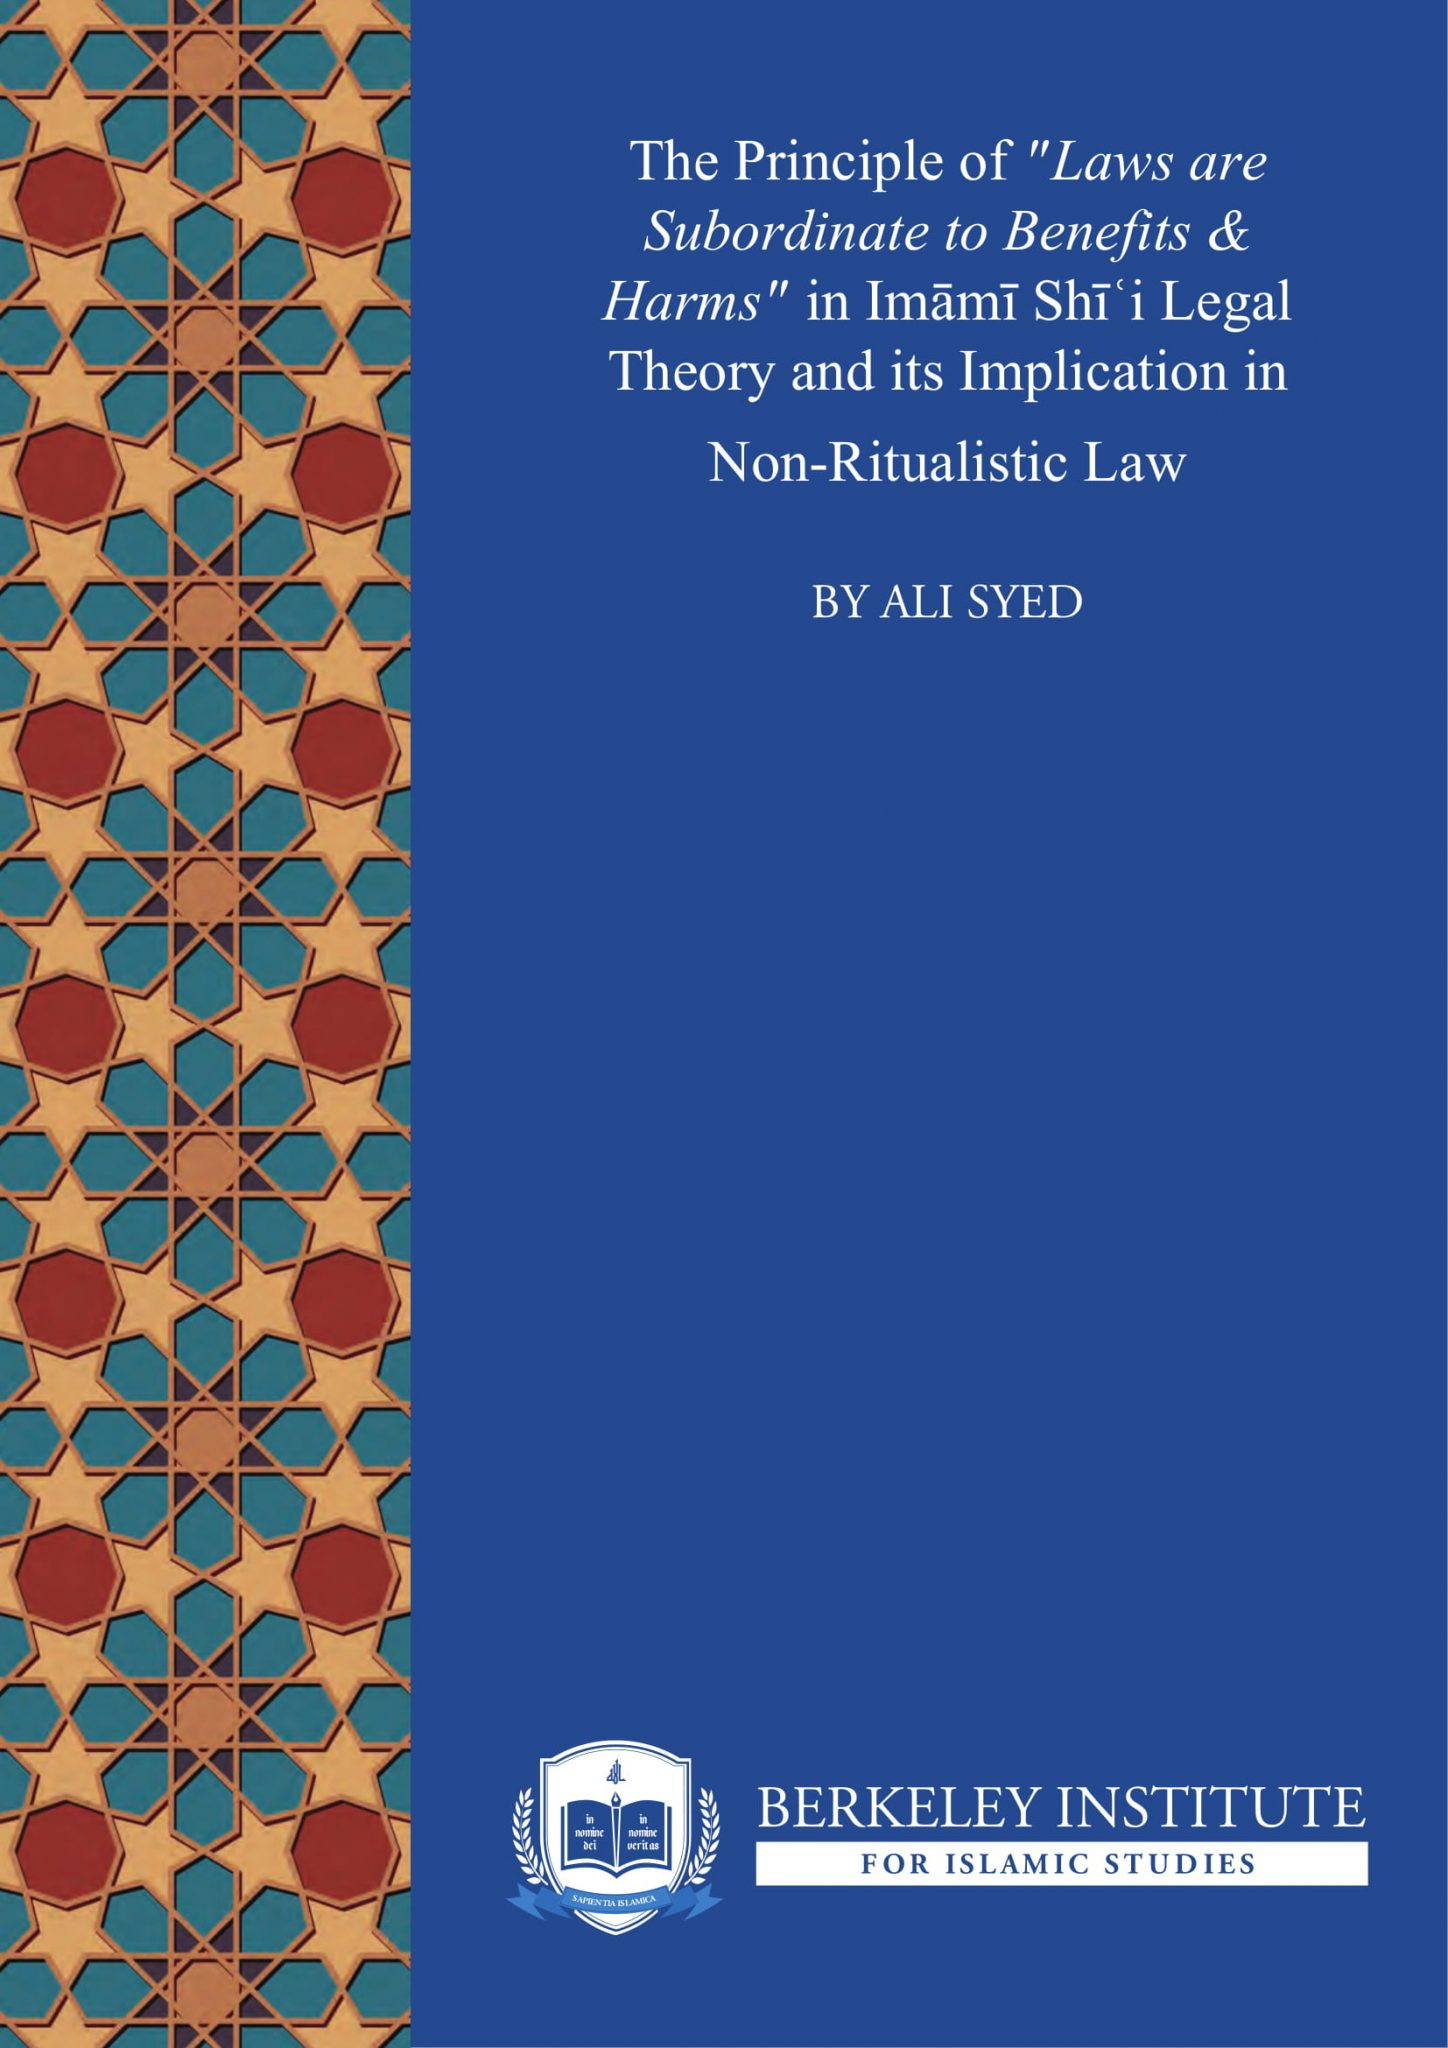 """The Principle of """"Laws are Subordinate to Benefits & Harms"""" in Imāmī Shīʿi Legal Theory and its Implication in Non-Ritualistic Law"""